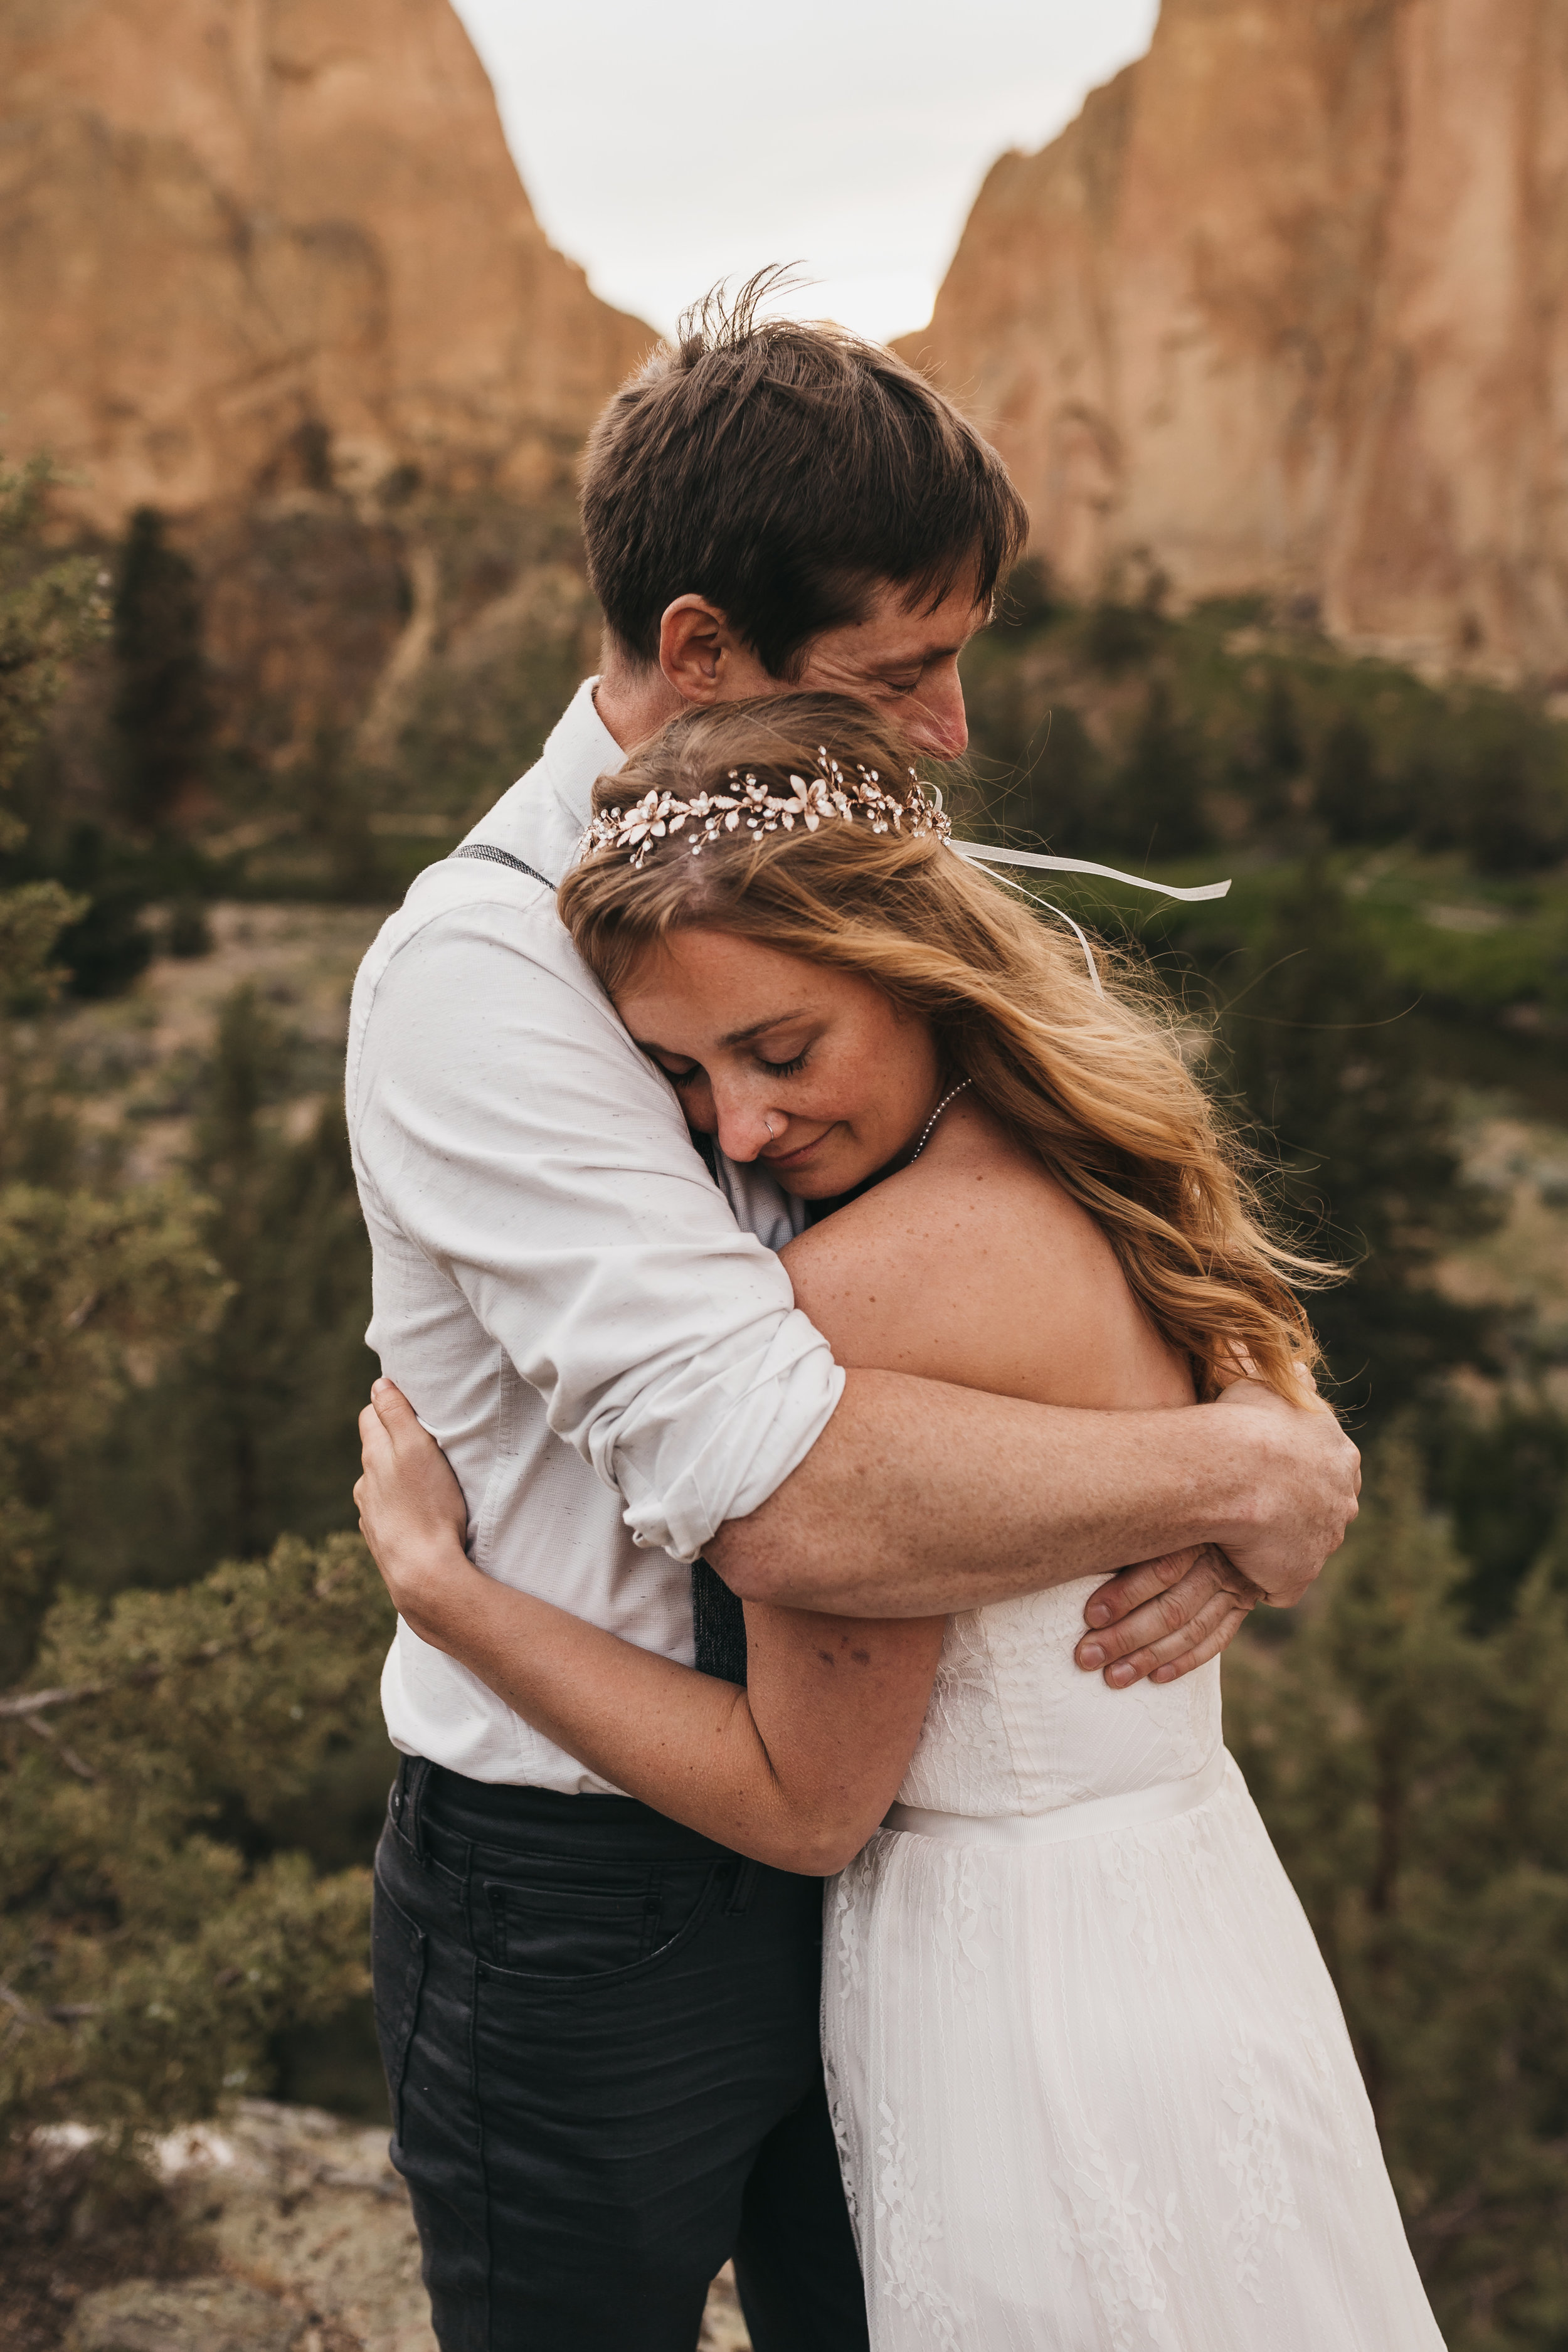 Smith Rock State Park Elopement: A Sunset Adventure | Between the Pine Adventure Elopement Photography